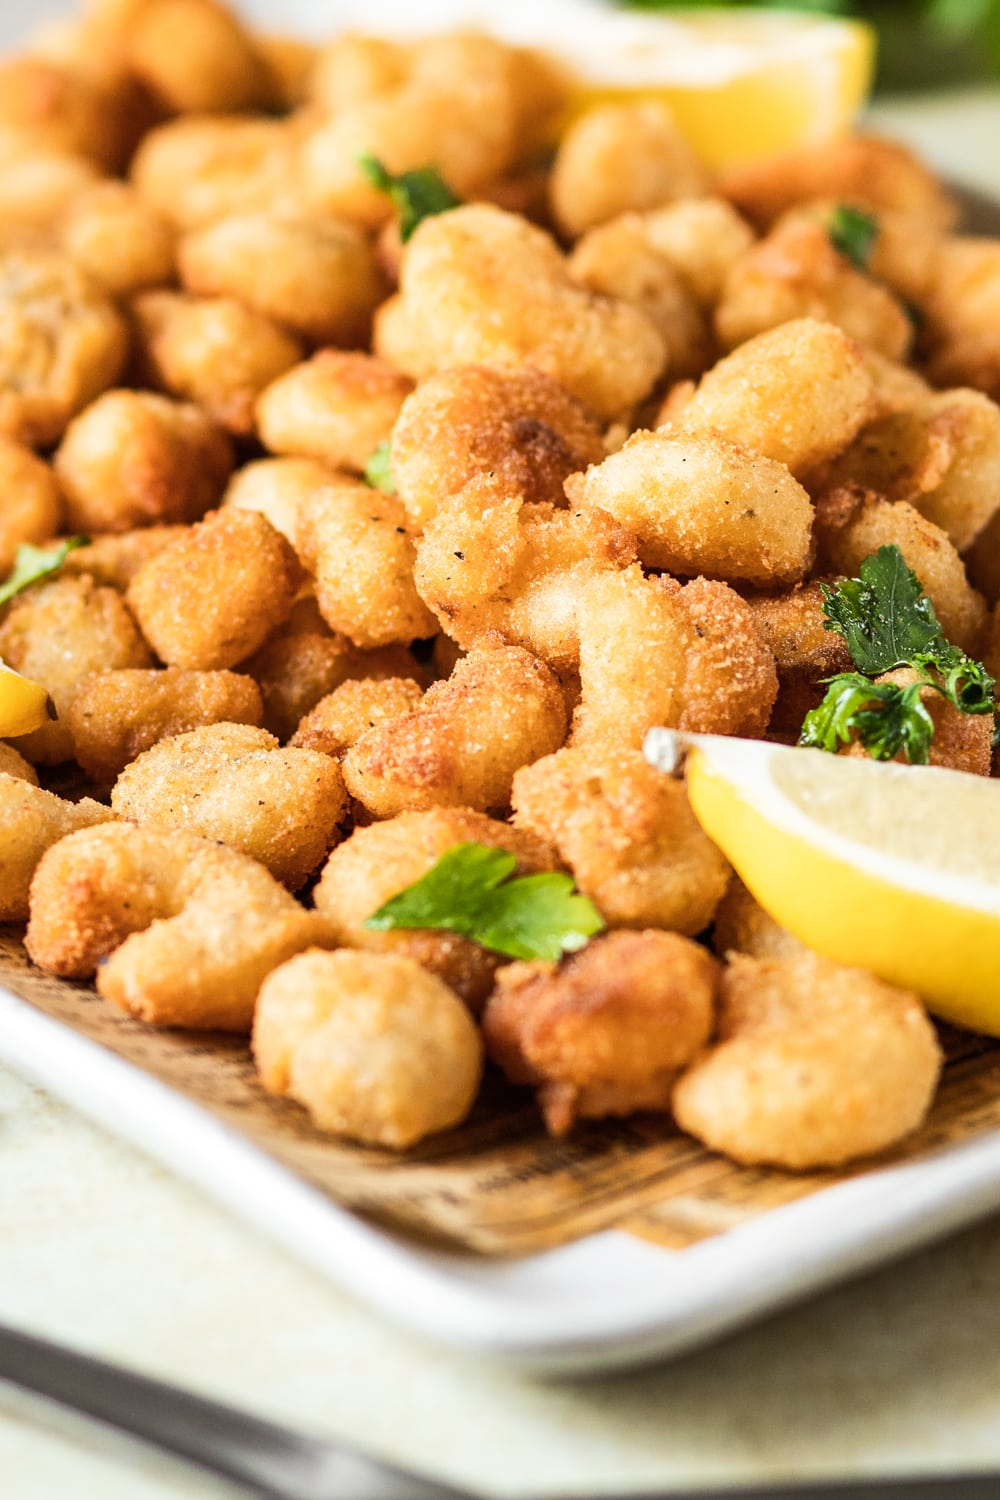 A zoomed in view of popcorn shrimp filling the surface of a white square plate with brown newspaper on the plate.